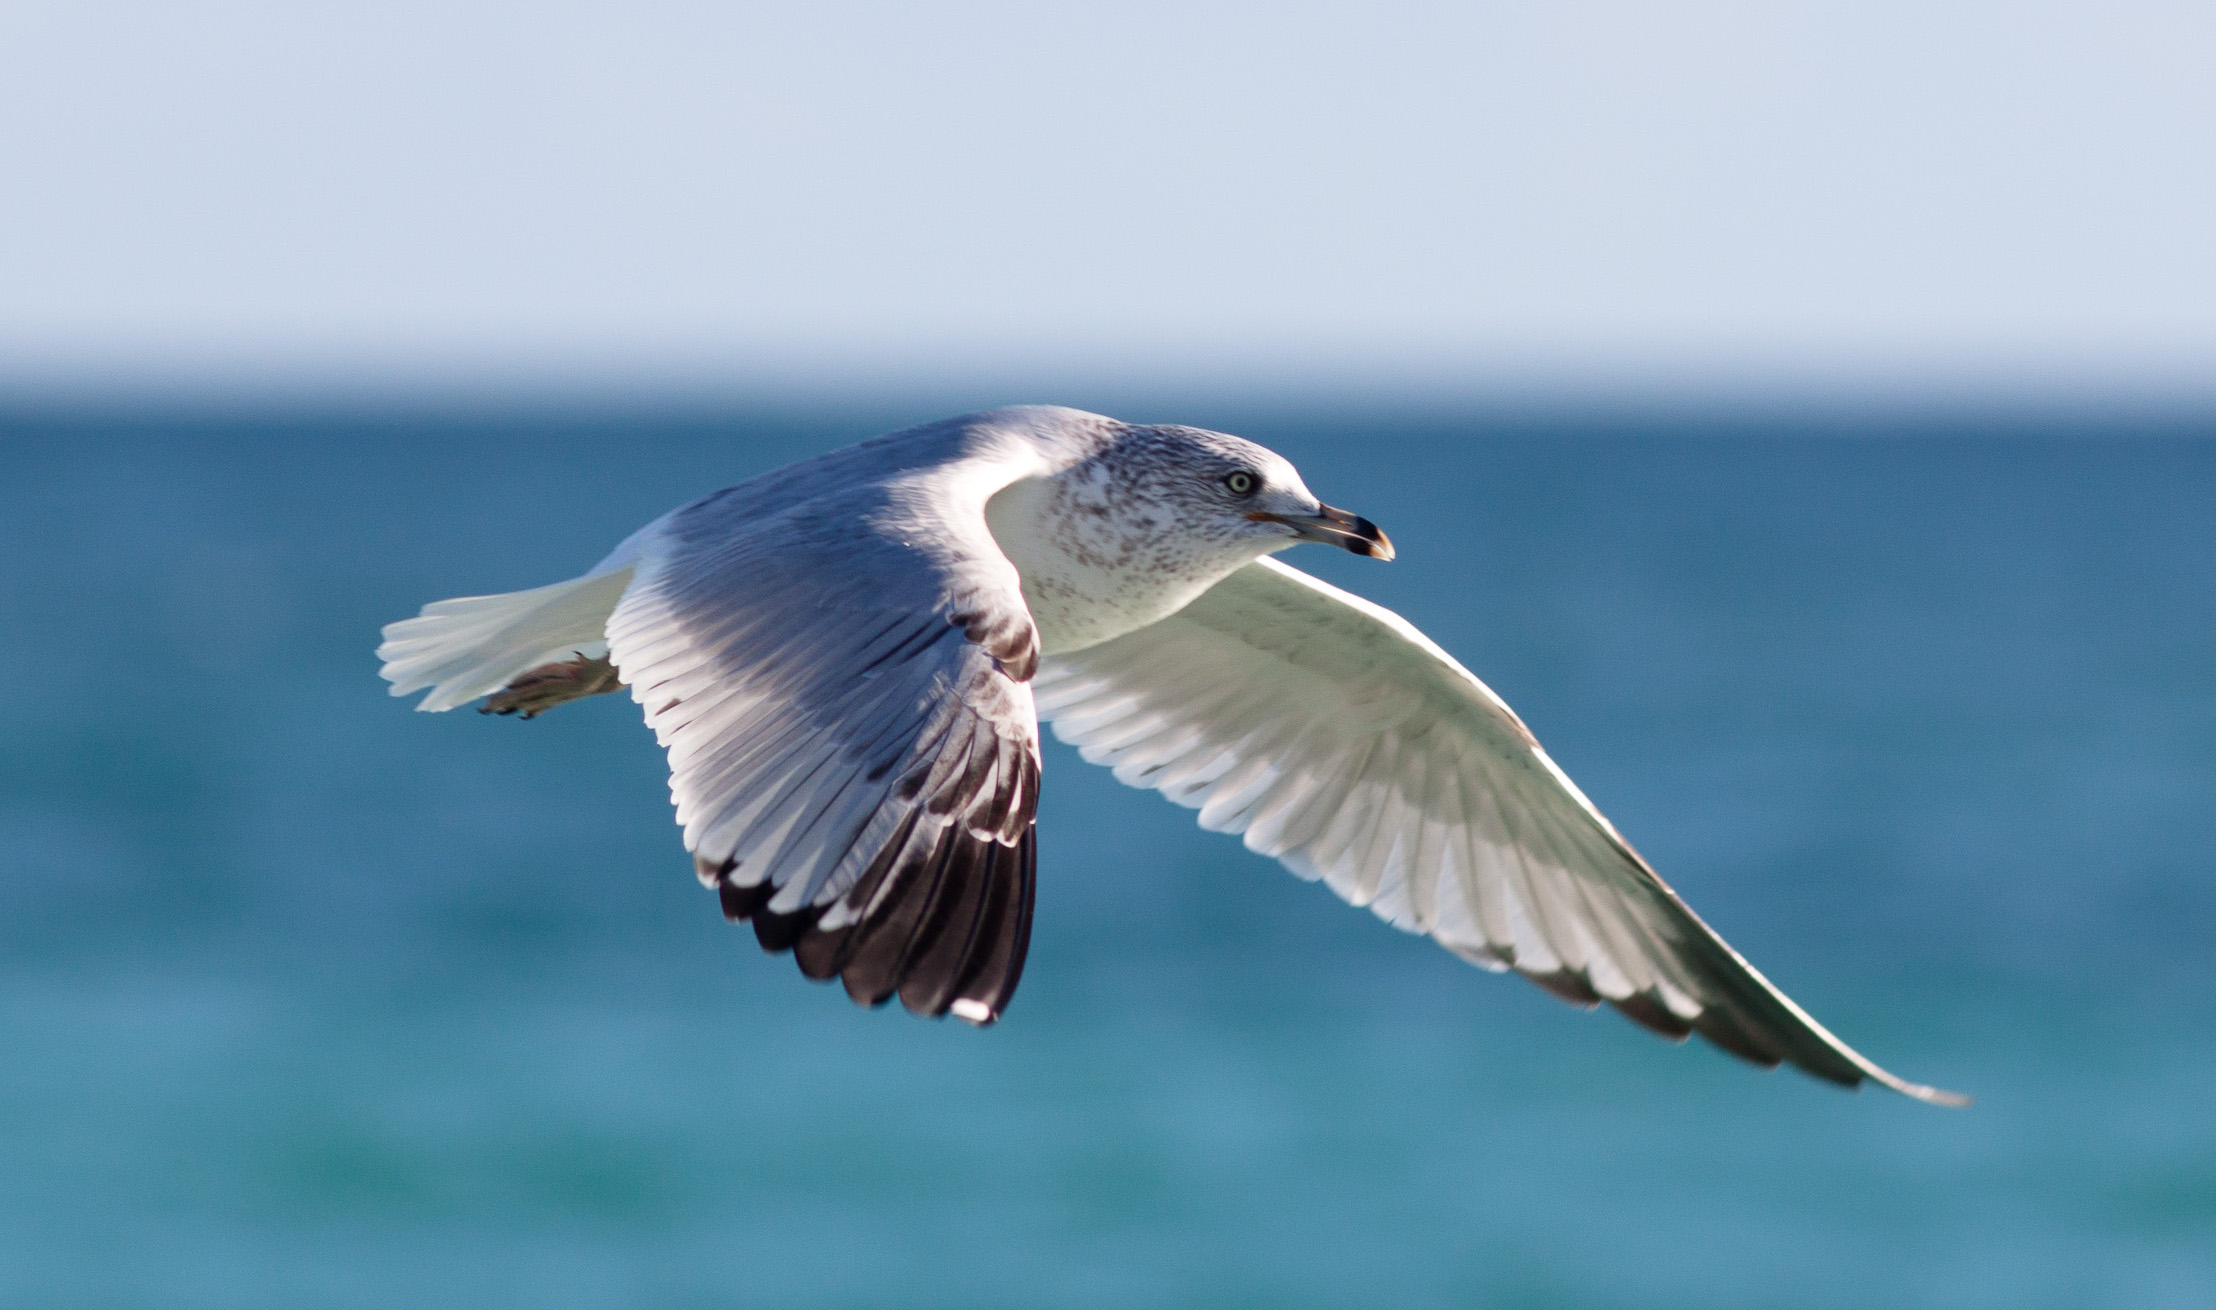 <a href='https://www.flickr.com/photos/fbohac/6617712775/'>'Seagull'</a> by <a href='https://www.flickr.com/people/fbohac'>Fil.Al</a> is licensed under <a href='https://creativecommons.org/licenses/by/2.0'>CC BY 2.0</a>